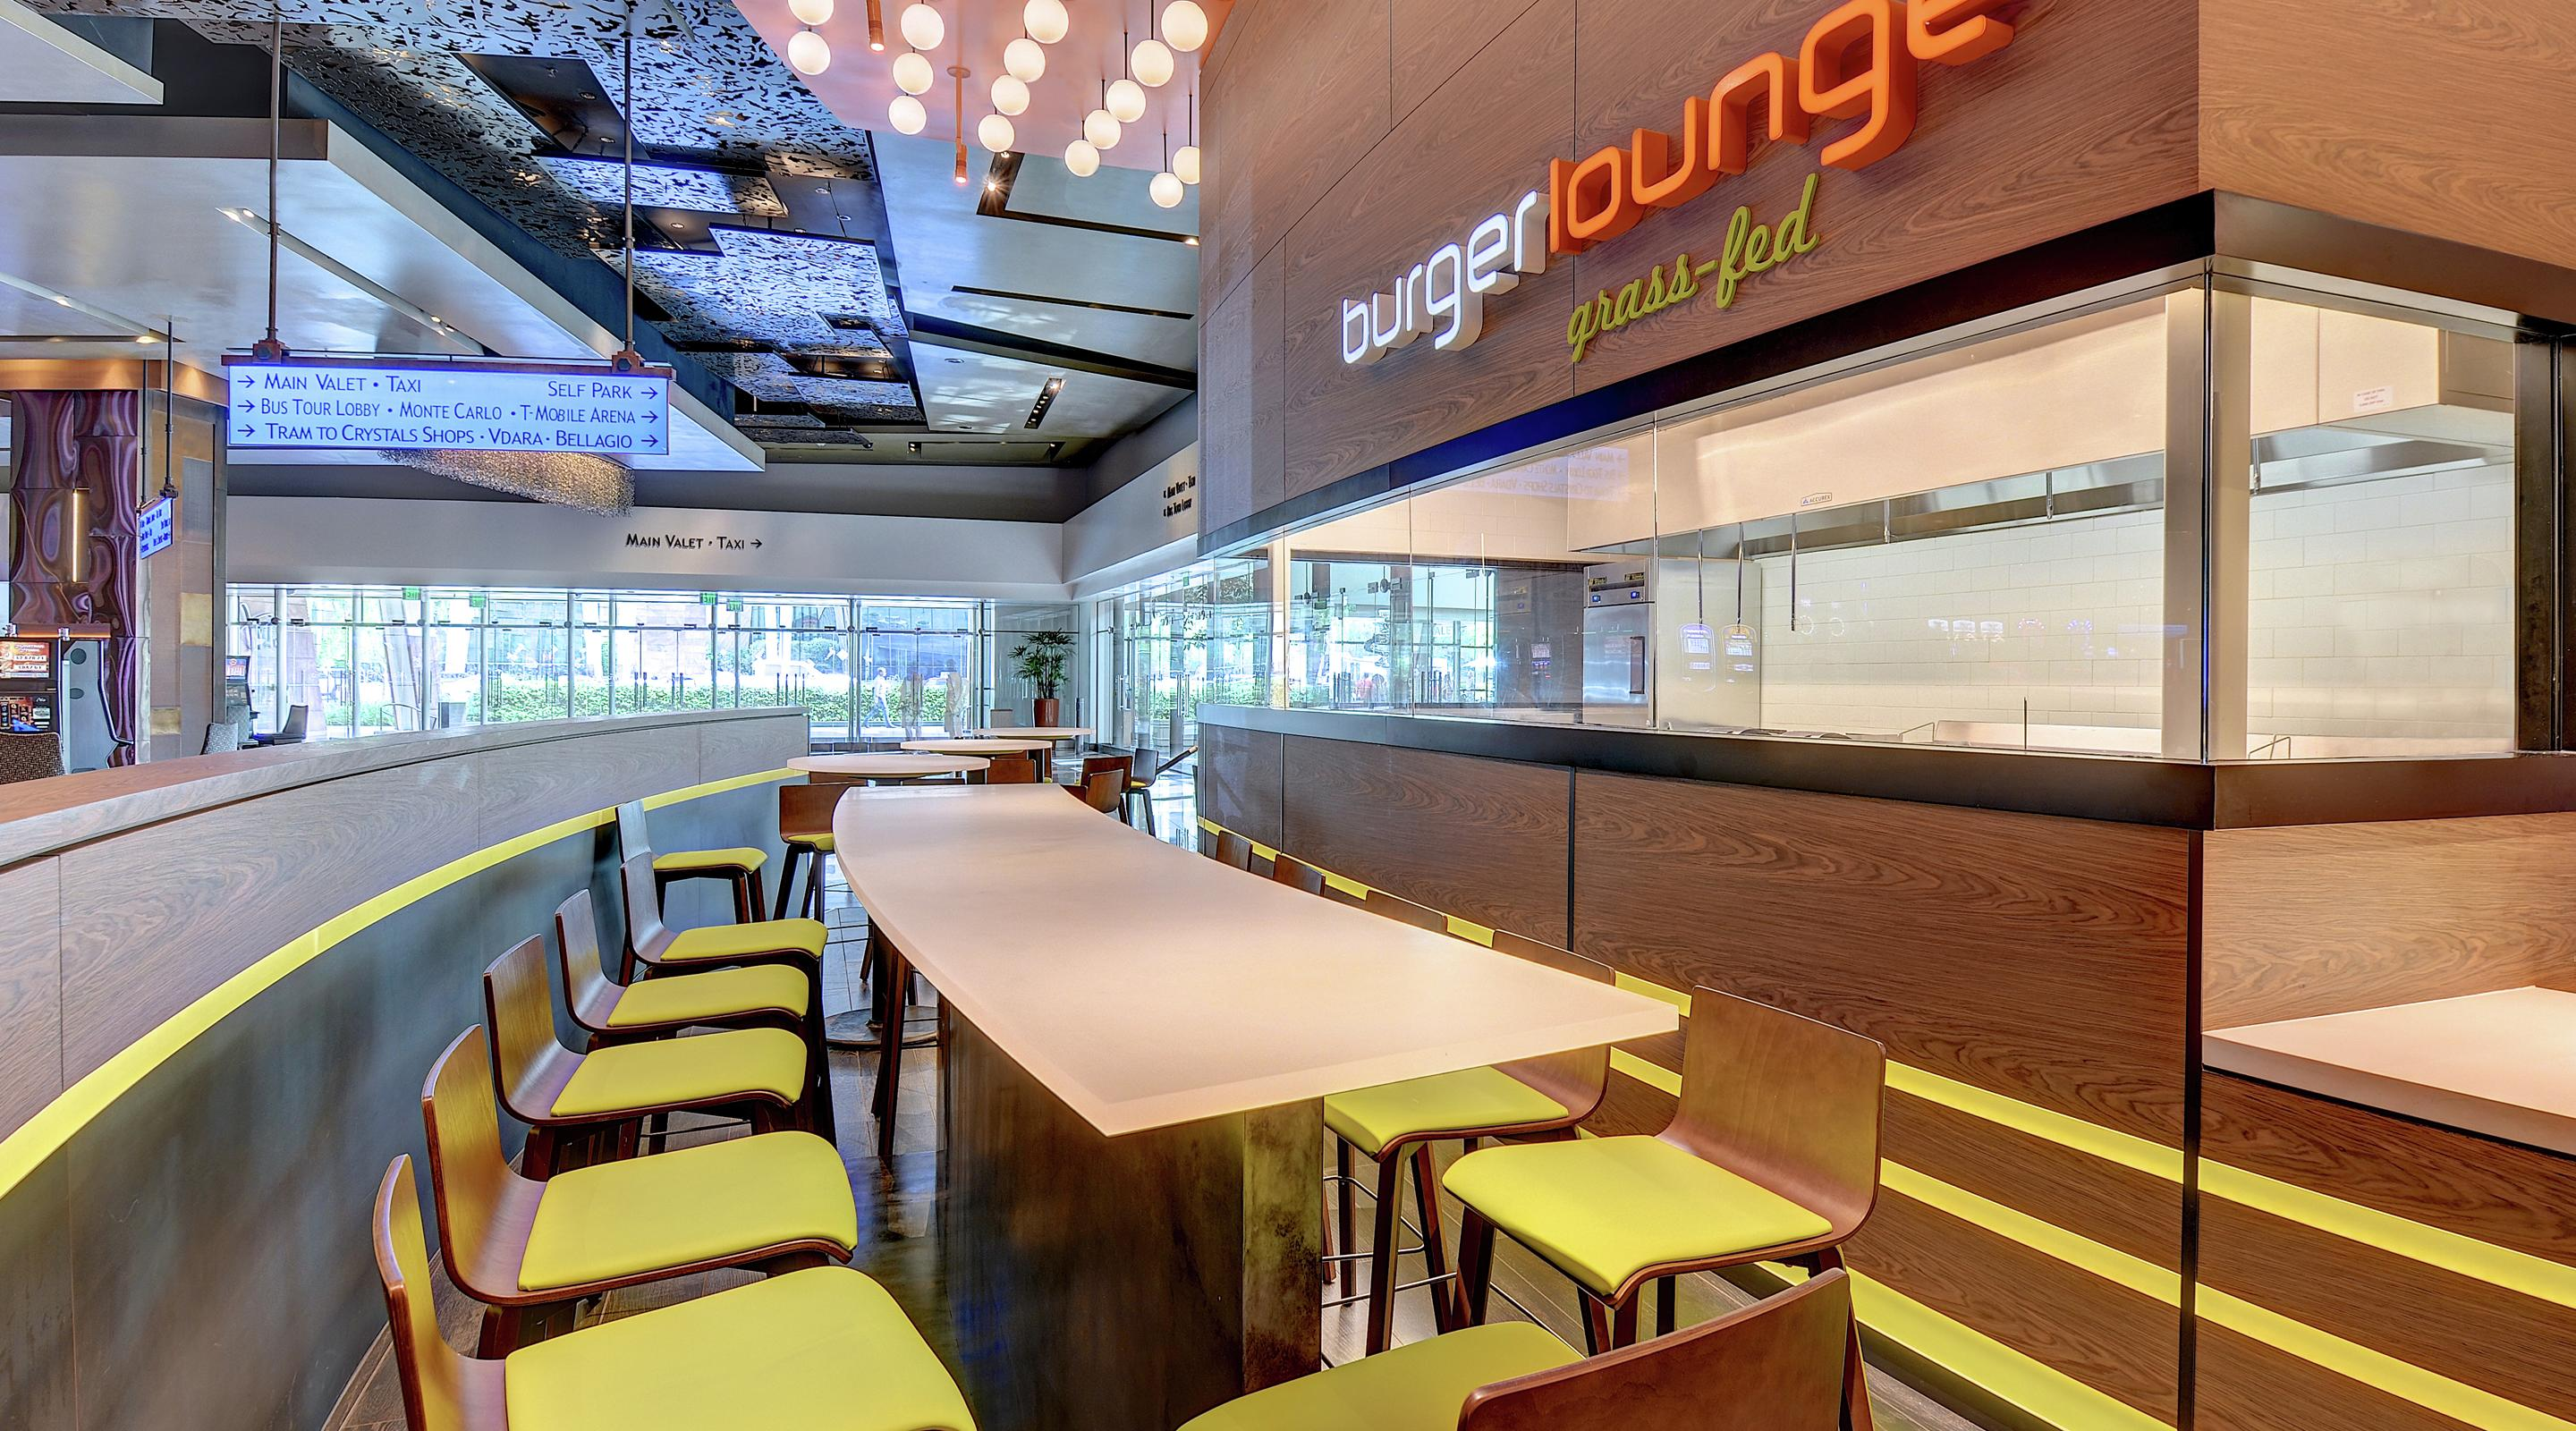 Located on the Casino Level, Burger Lounge is open for lunch, dinner and late night.